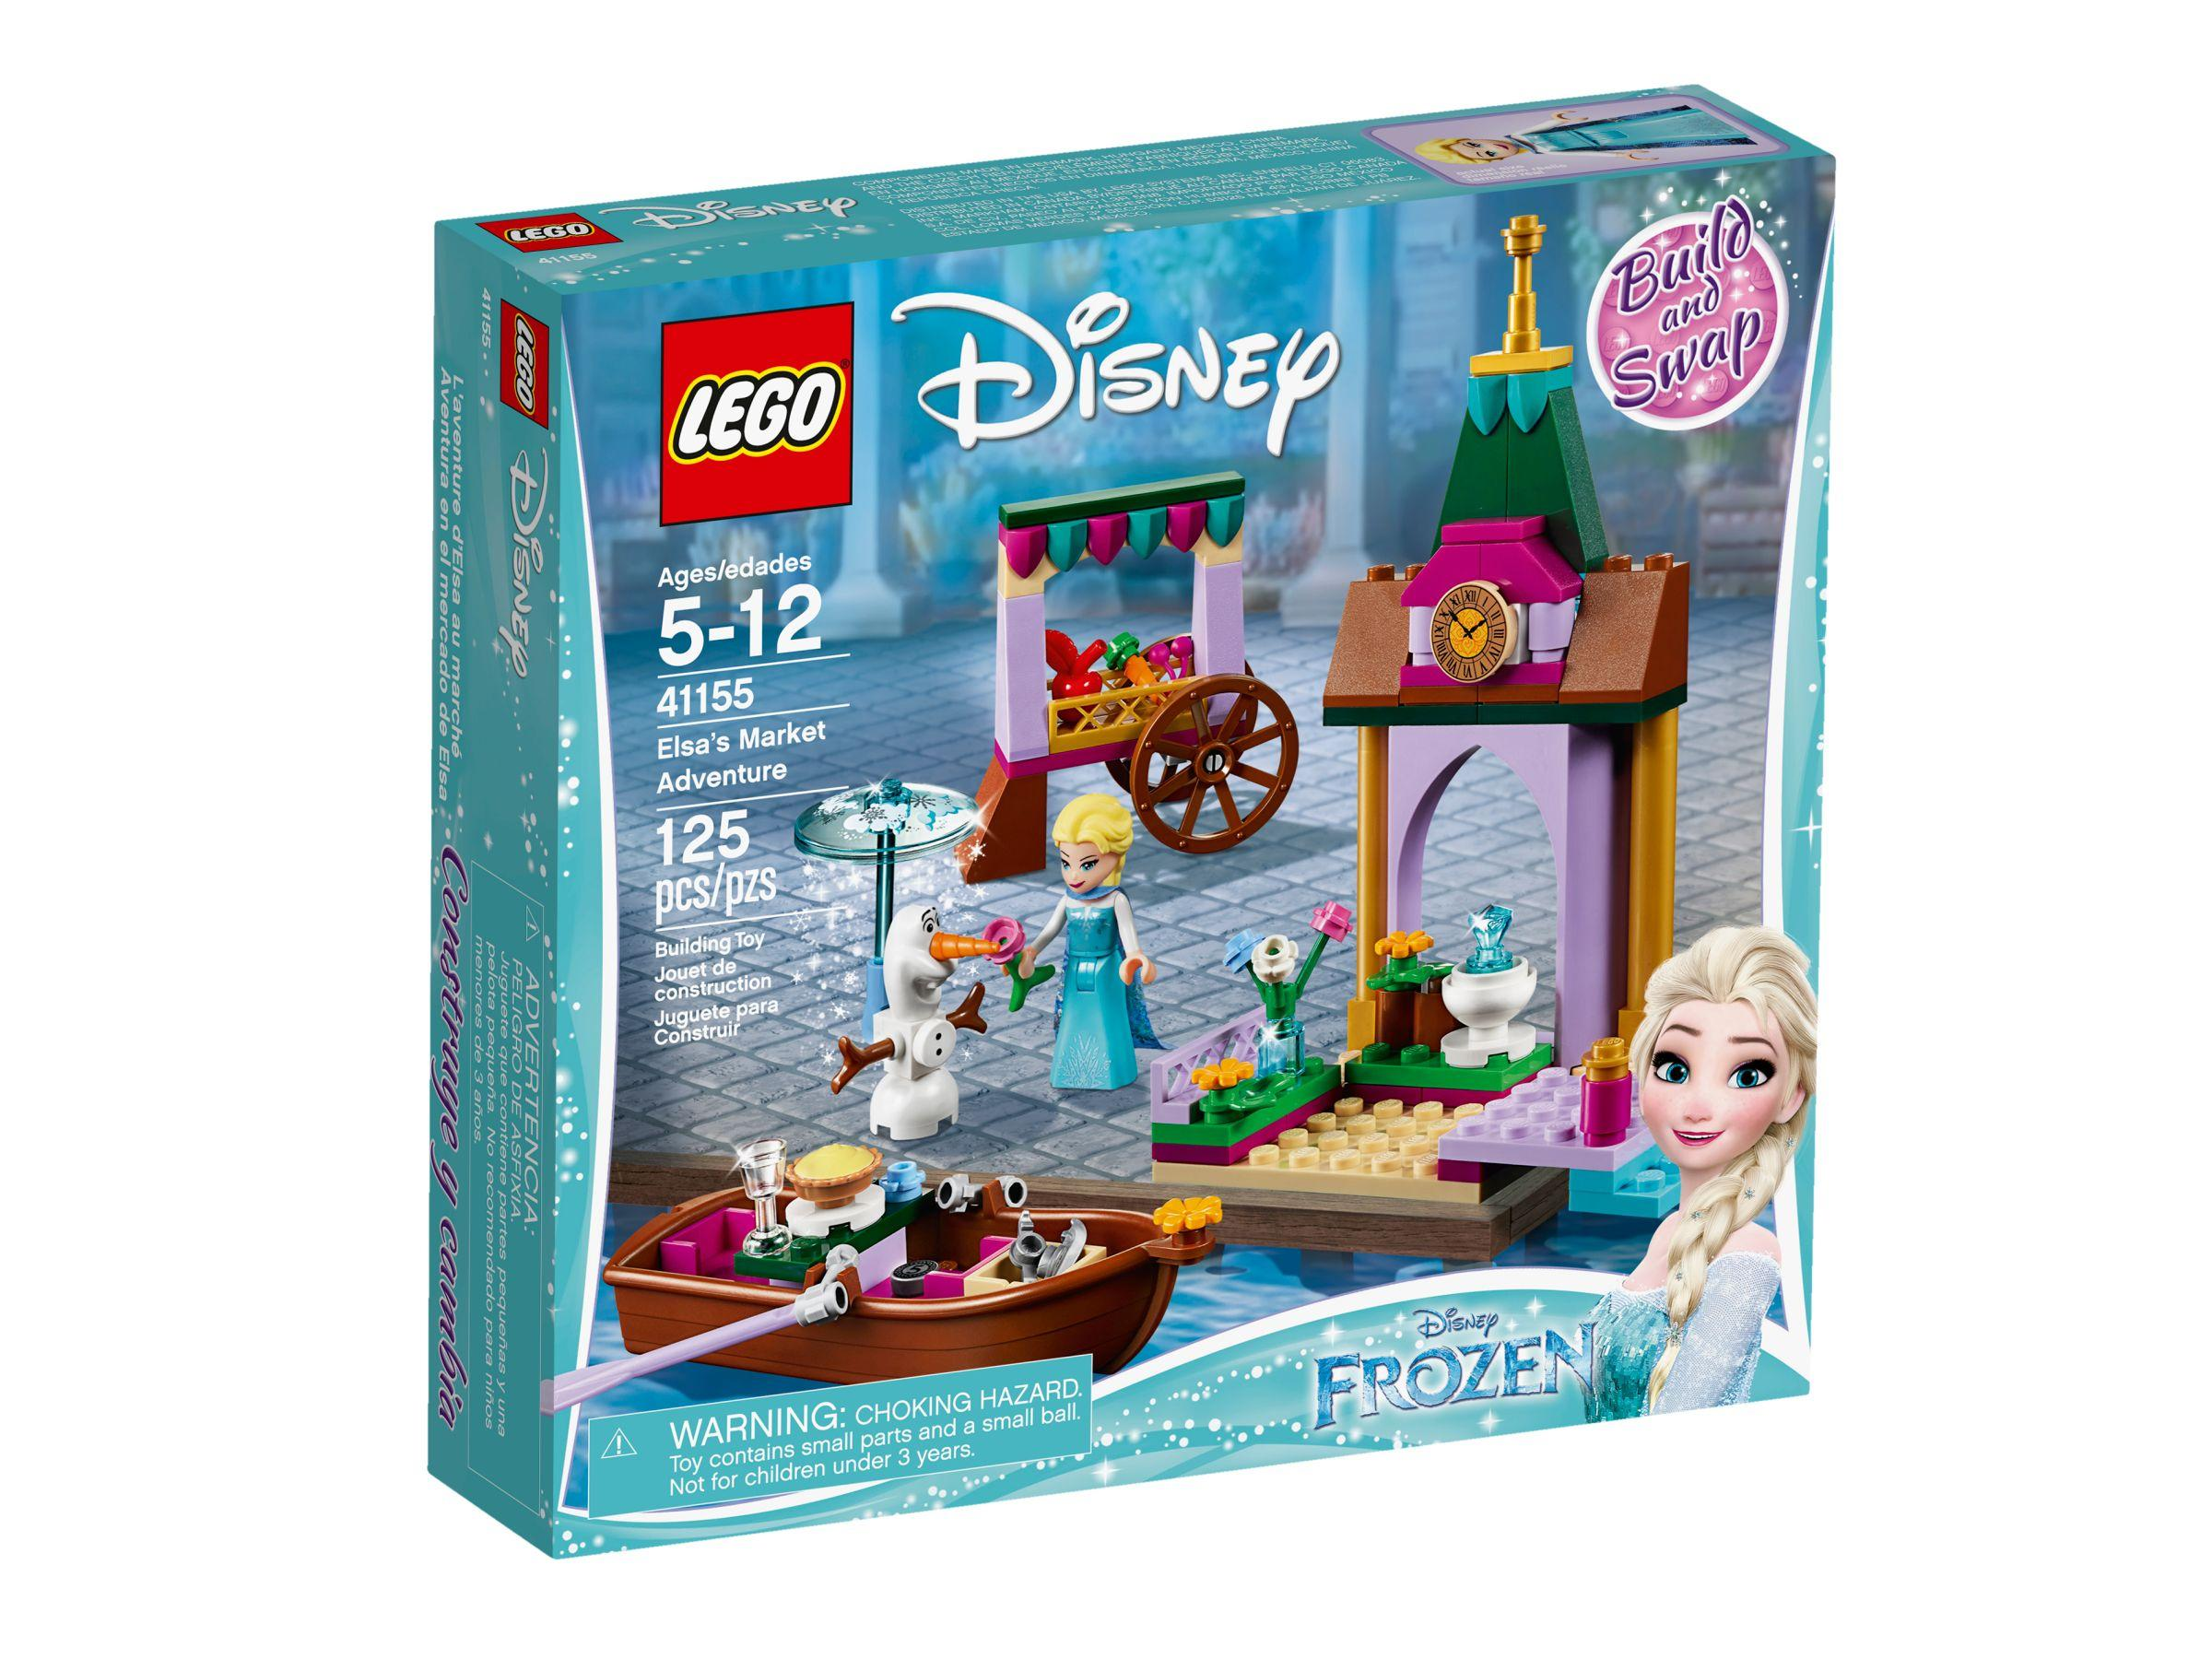 Lego Disney Princess Elsa's Market Adventure (41155)